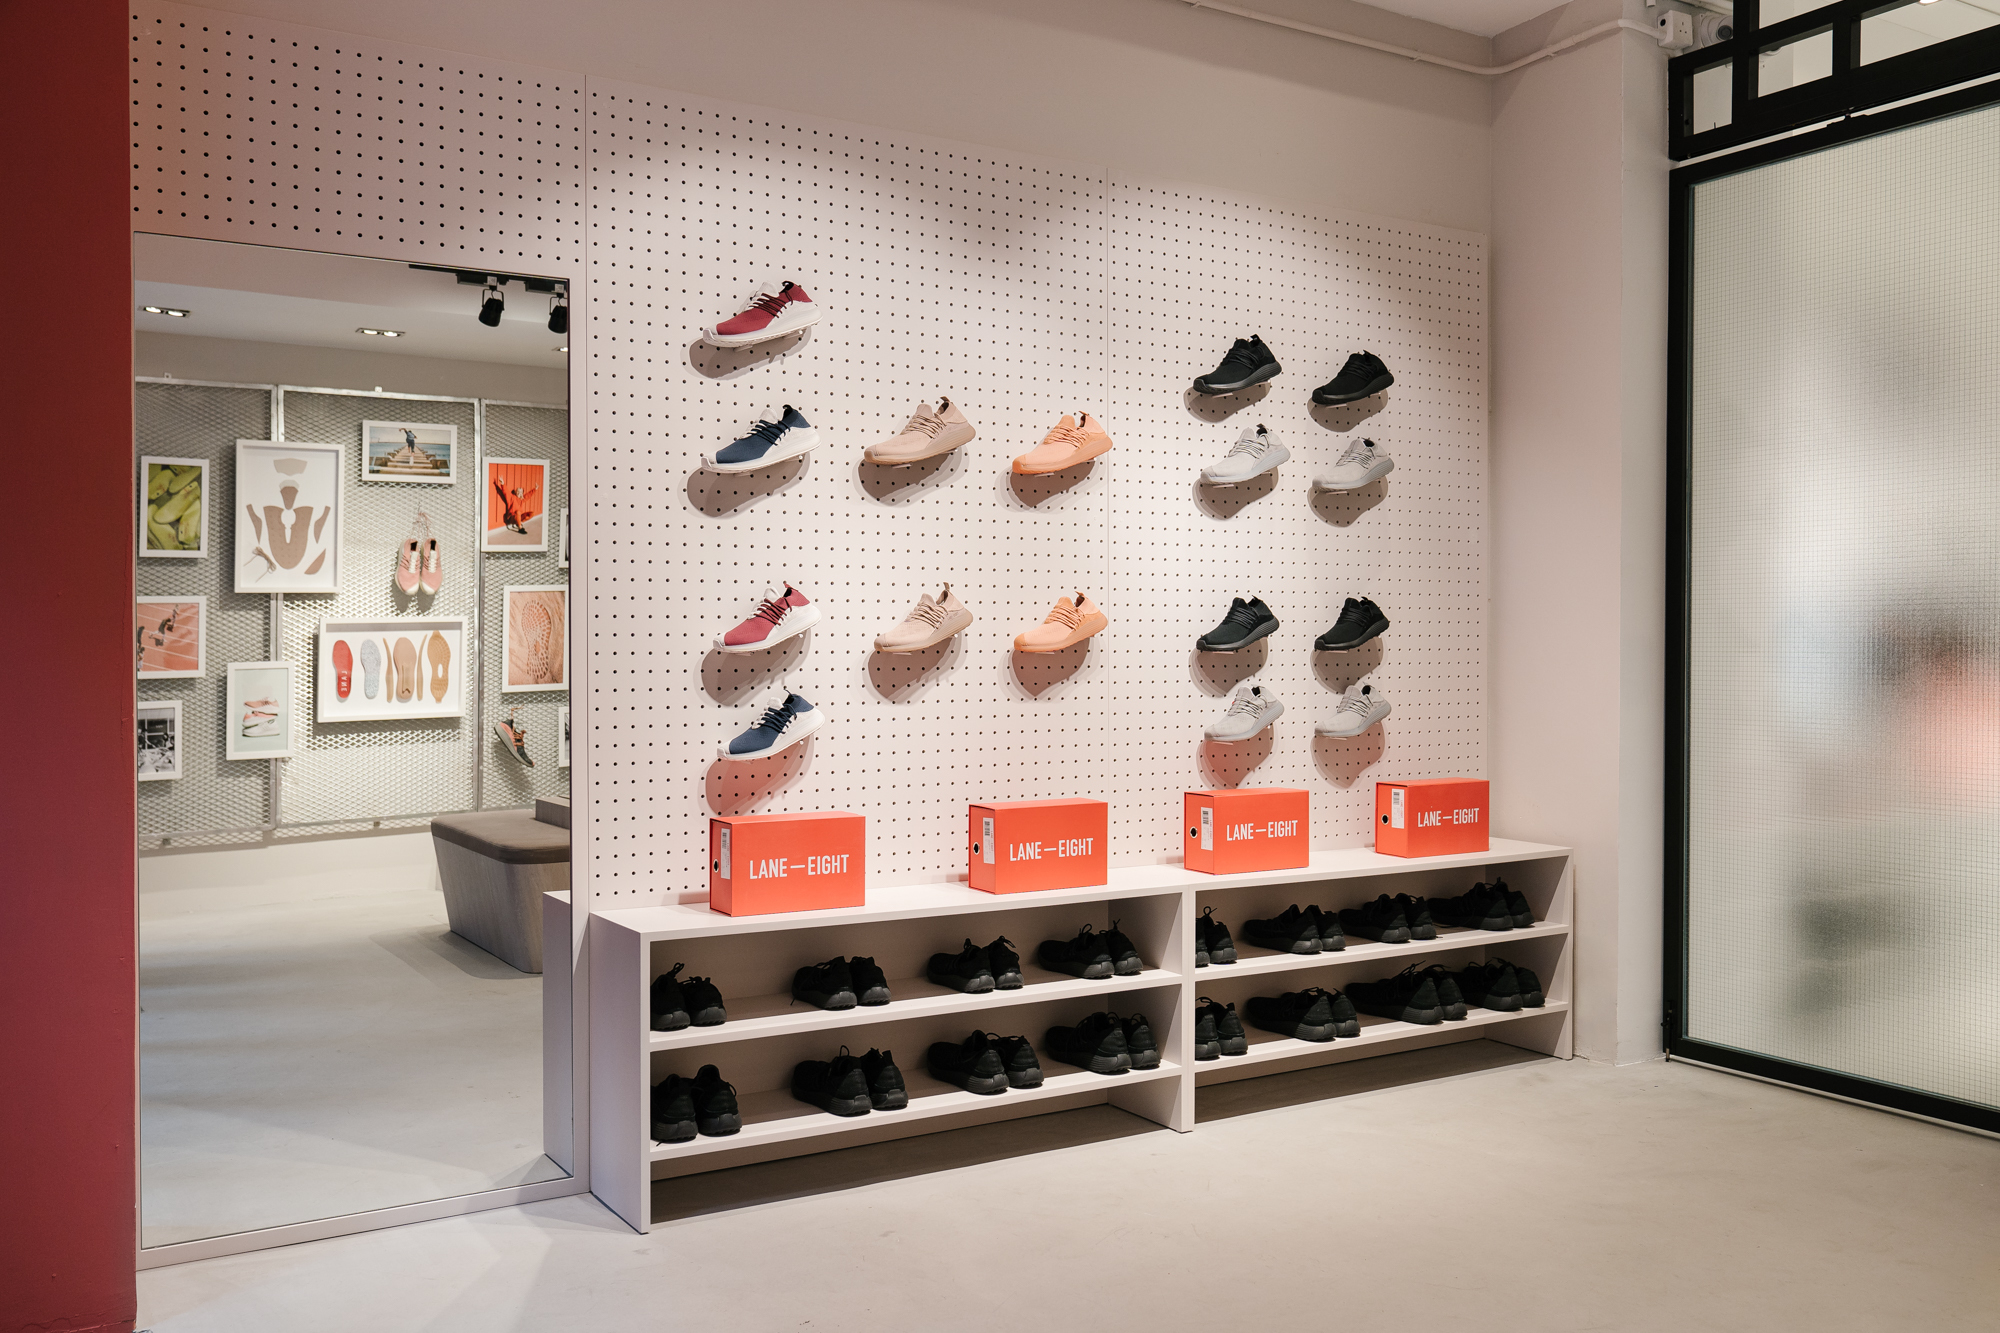 Local footwear brand Lane Eight opens in Wan Chai